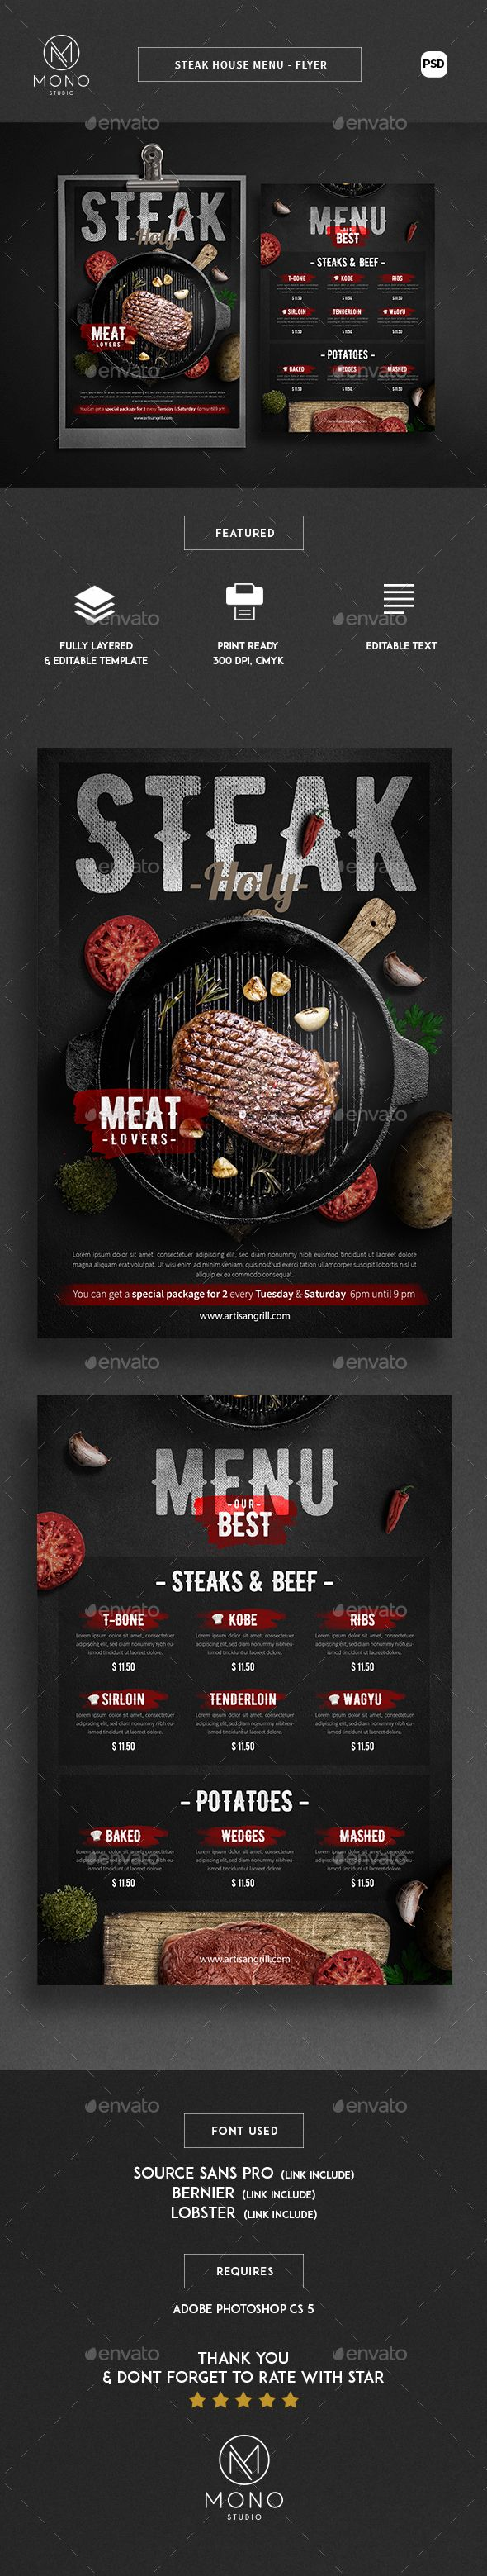 Steak House Menu - Flyer Template PSD. Download here: http://graphicriver.net/item/steak-house-menu-flyer/16587998?ref=ksioks